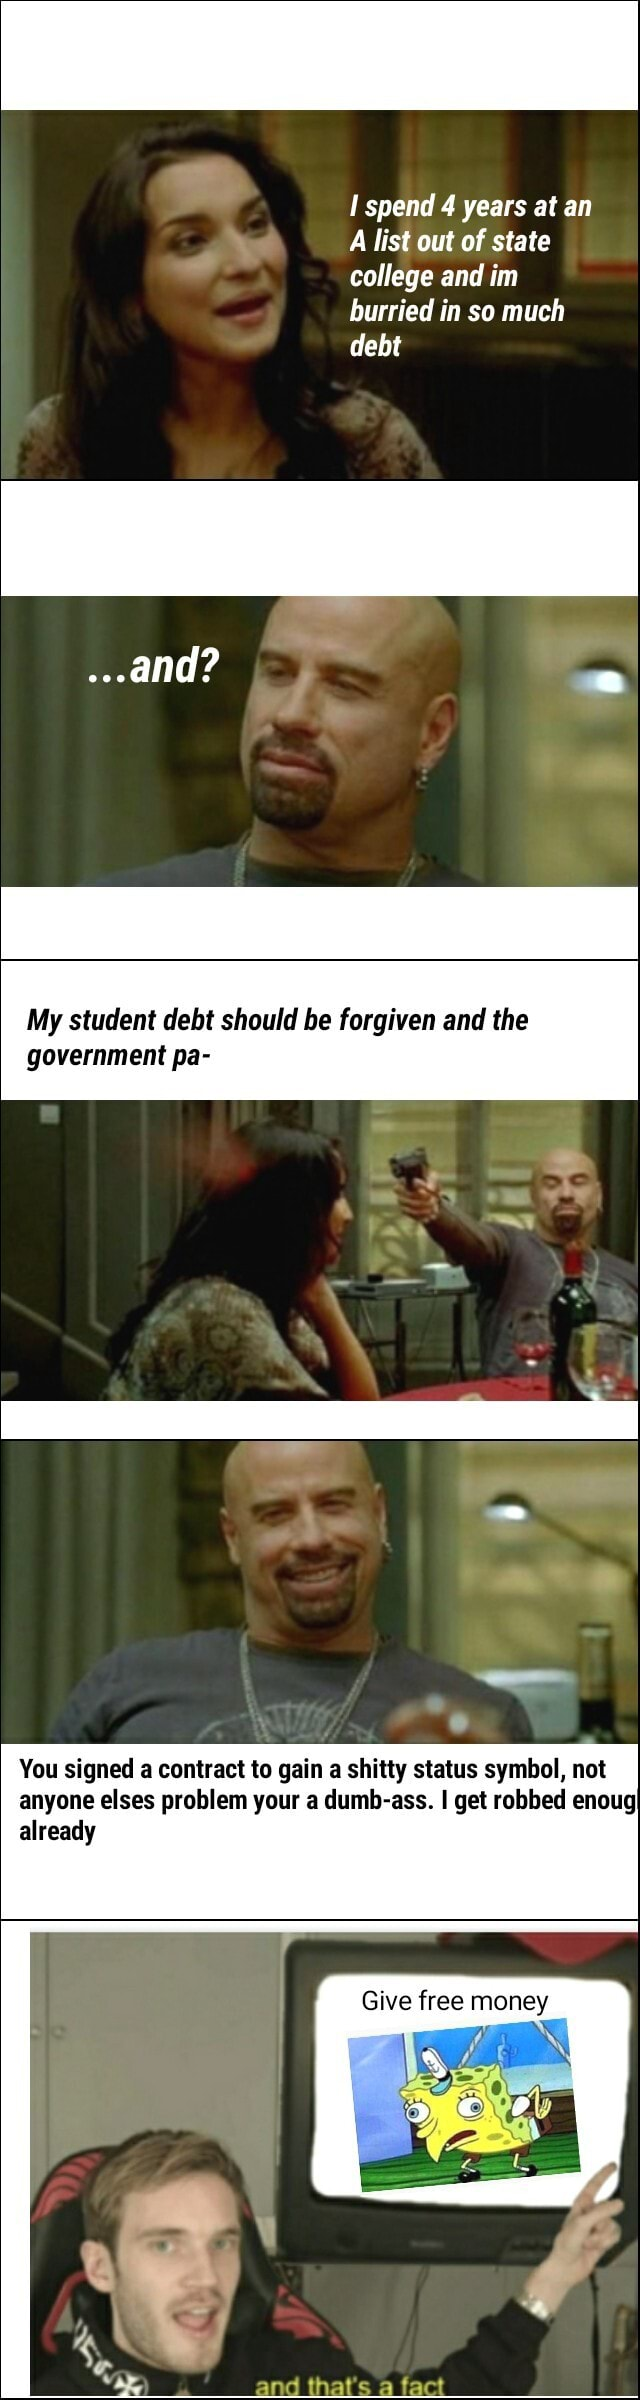 Spend 4 years at an A list out of state college and im burried in so much debt and My student debt should be forgiven and the government pa You signed a contract to gain a shitty status symbol, not anyone elses problem your a dumb ass. I get robbed enougI already Give free money and that's a fact memes